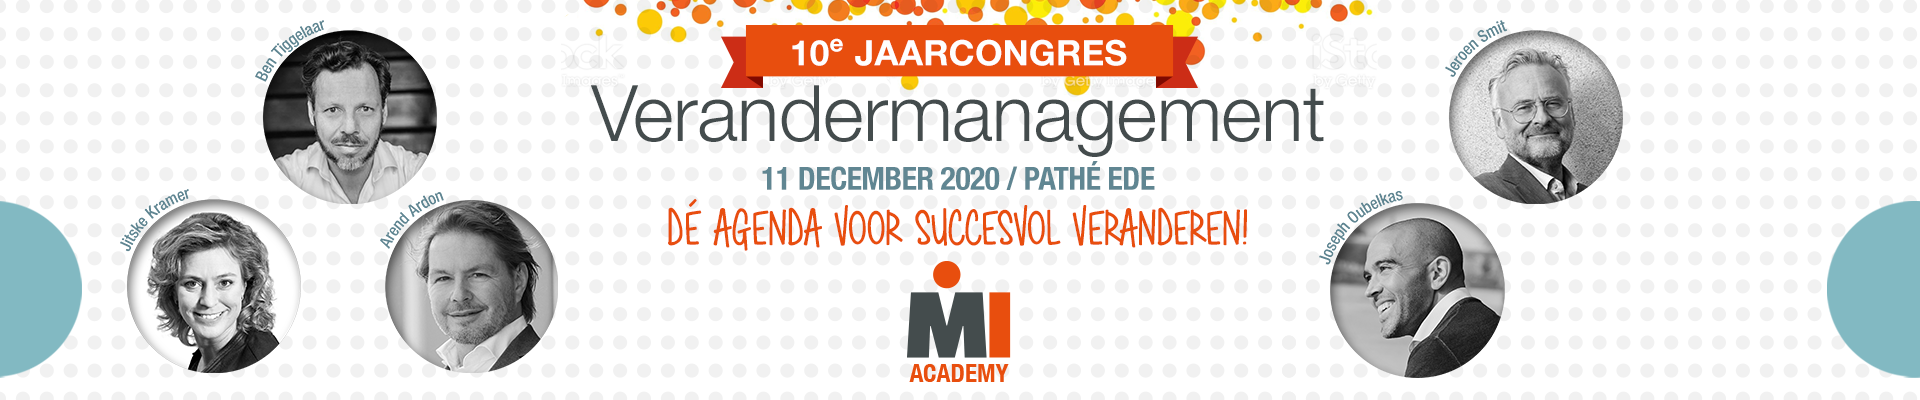 Jaarcongres Verandermanagement 2020